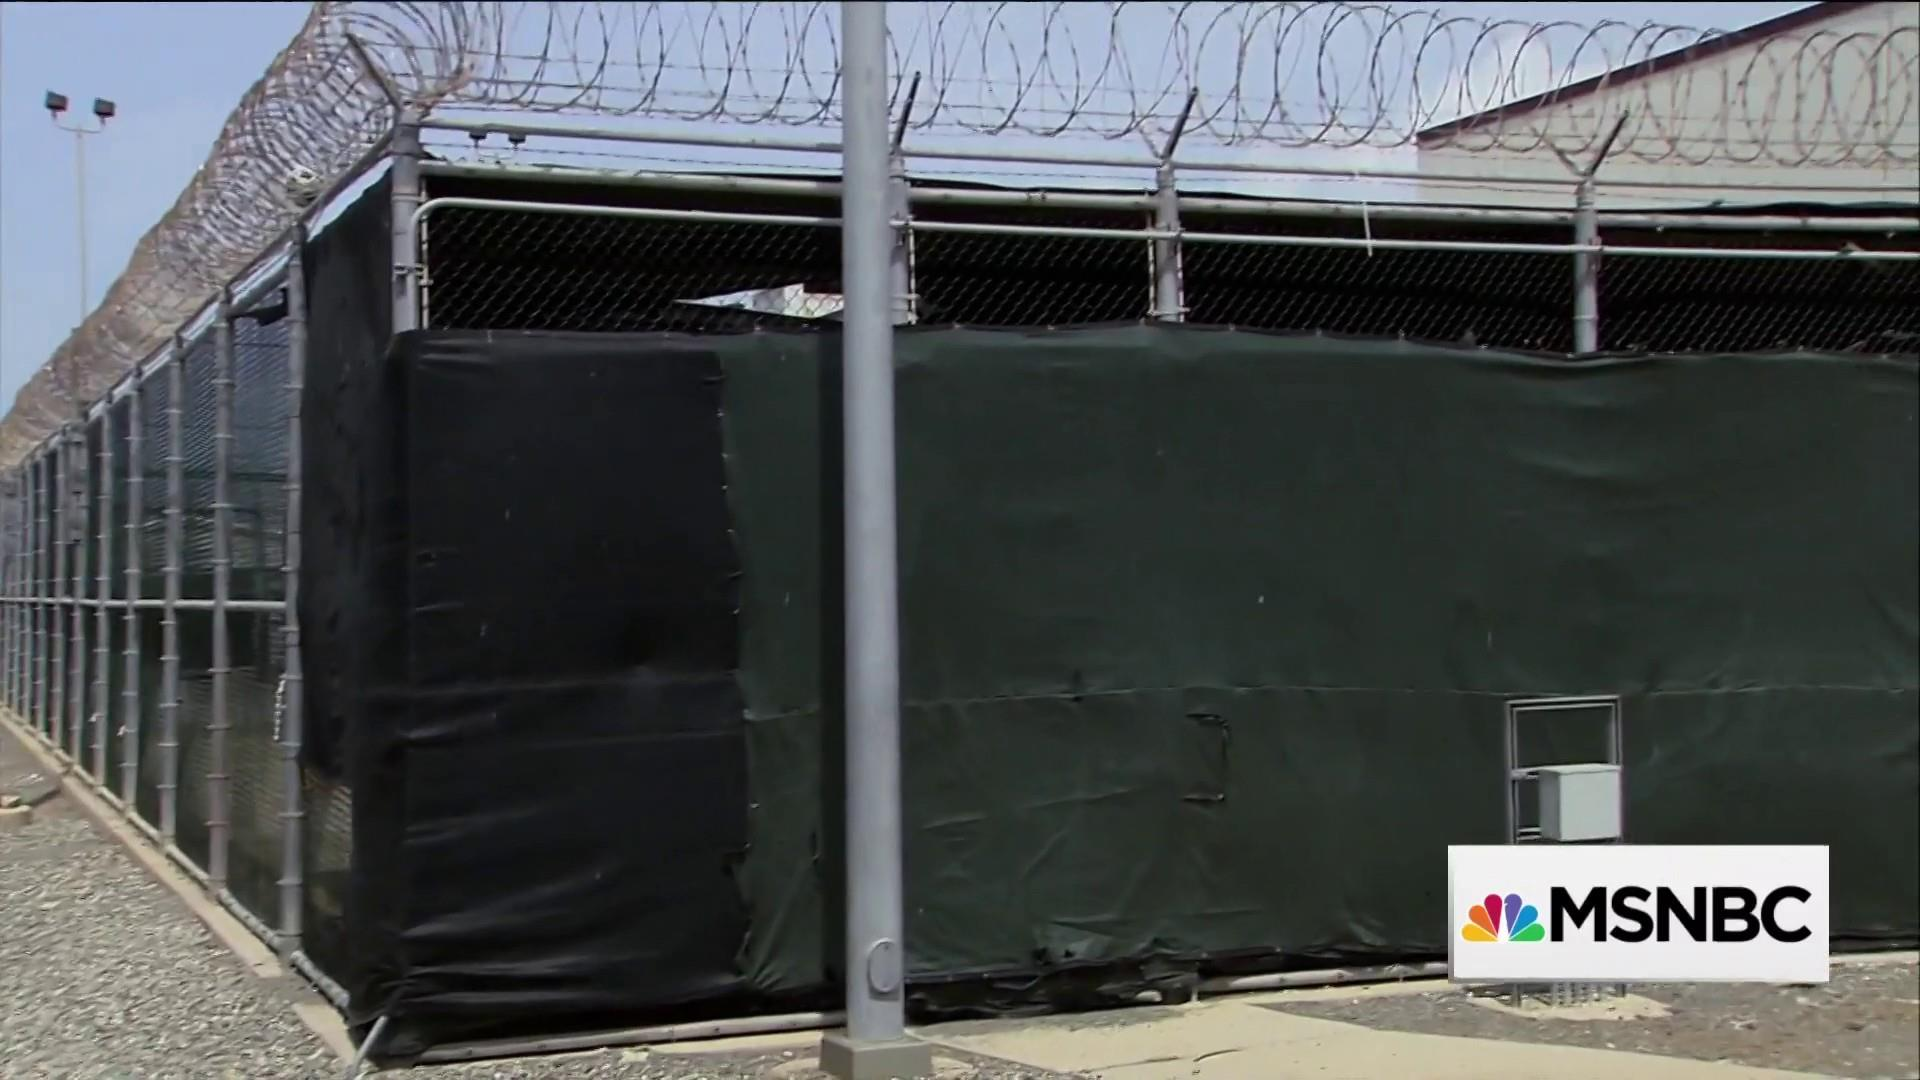 Chaos in Guantanamo over makeshift process